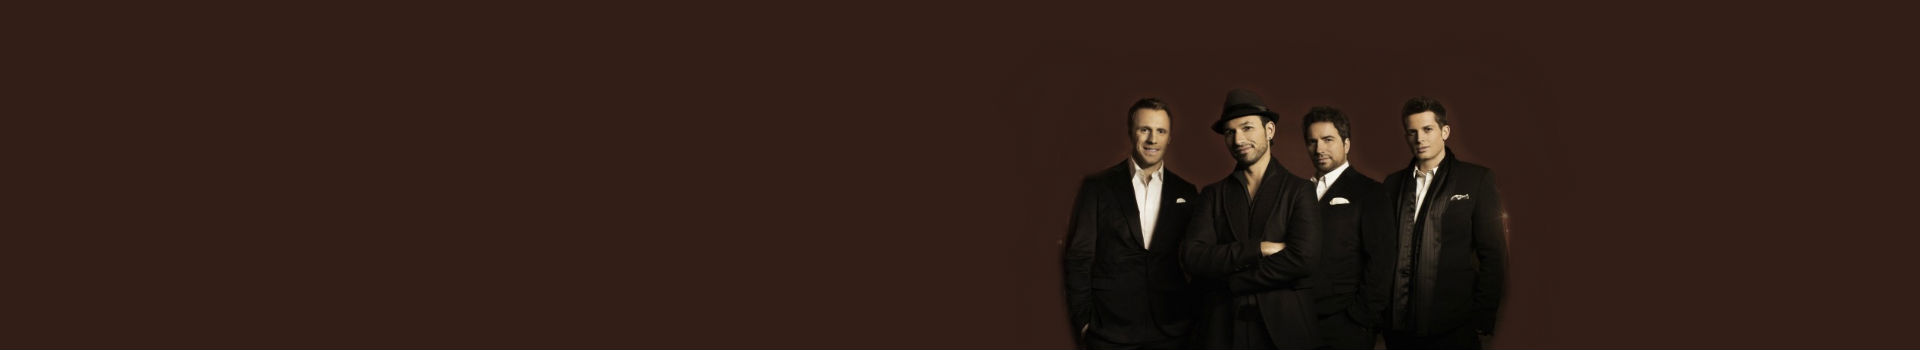 The Tenors banner image